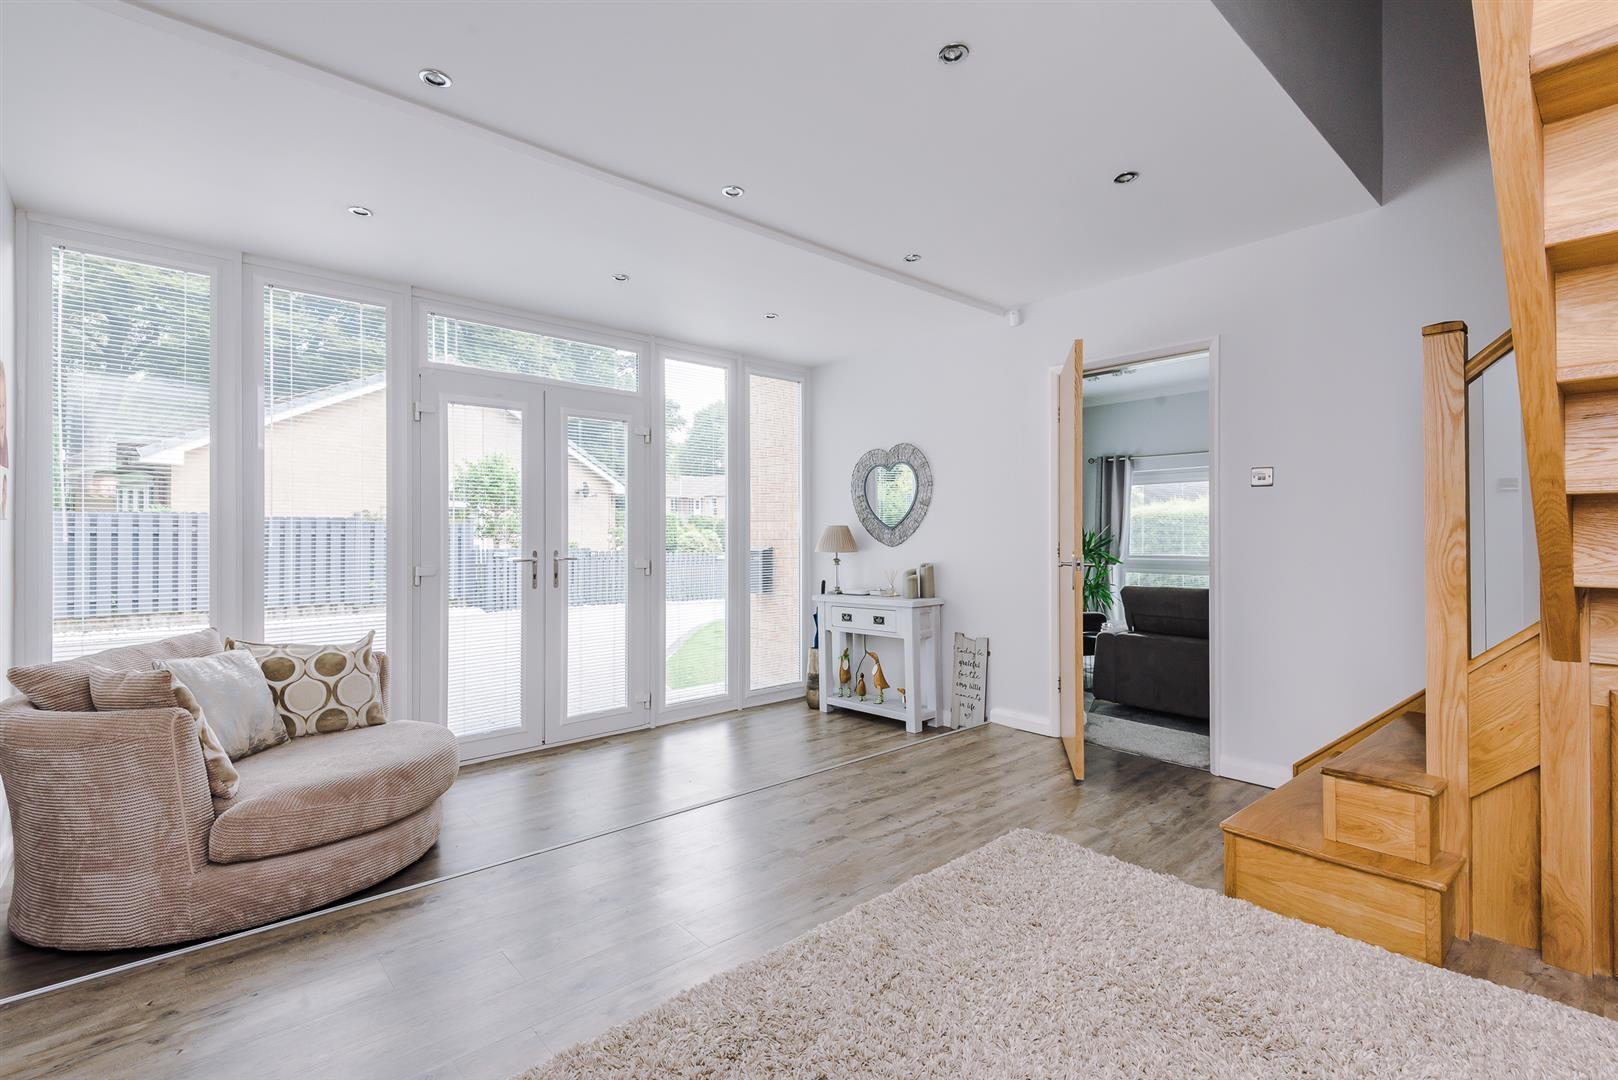 4 bedroom detached house For Sale in Bolton - DSC_6385.jpg.